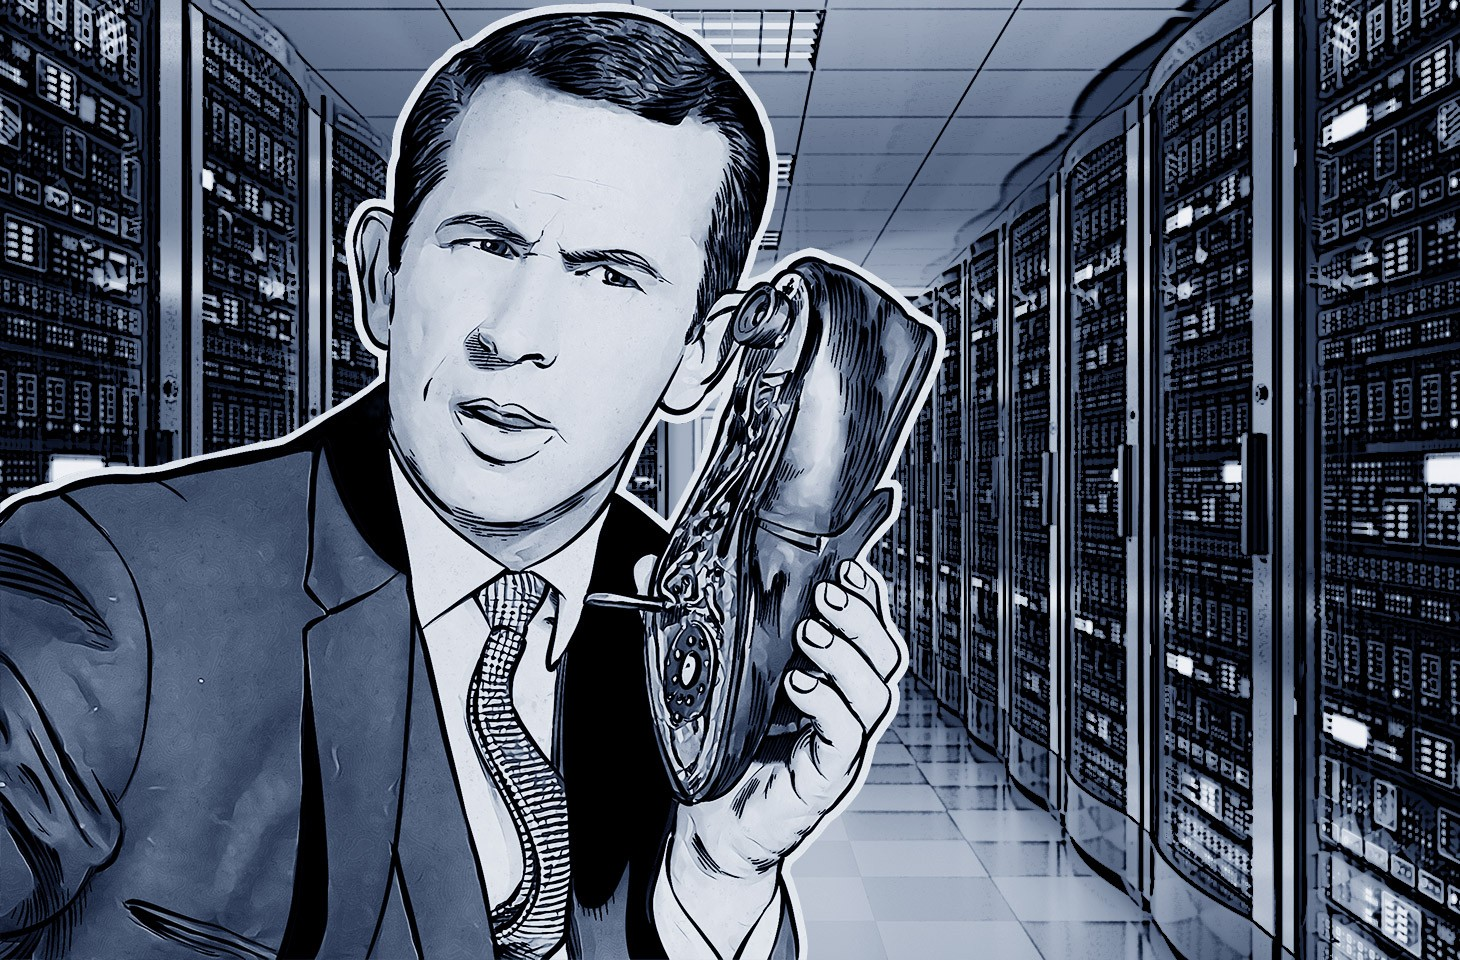 When it comes to online accounts, voicemail is a major security hole. Here's why.